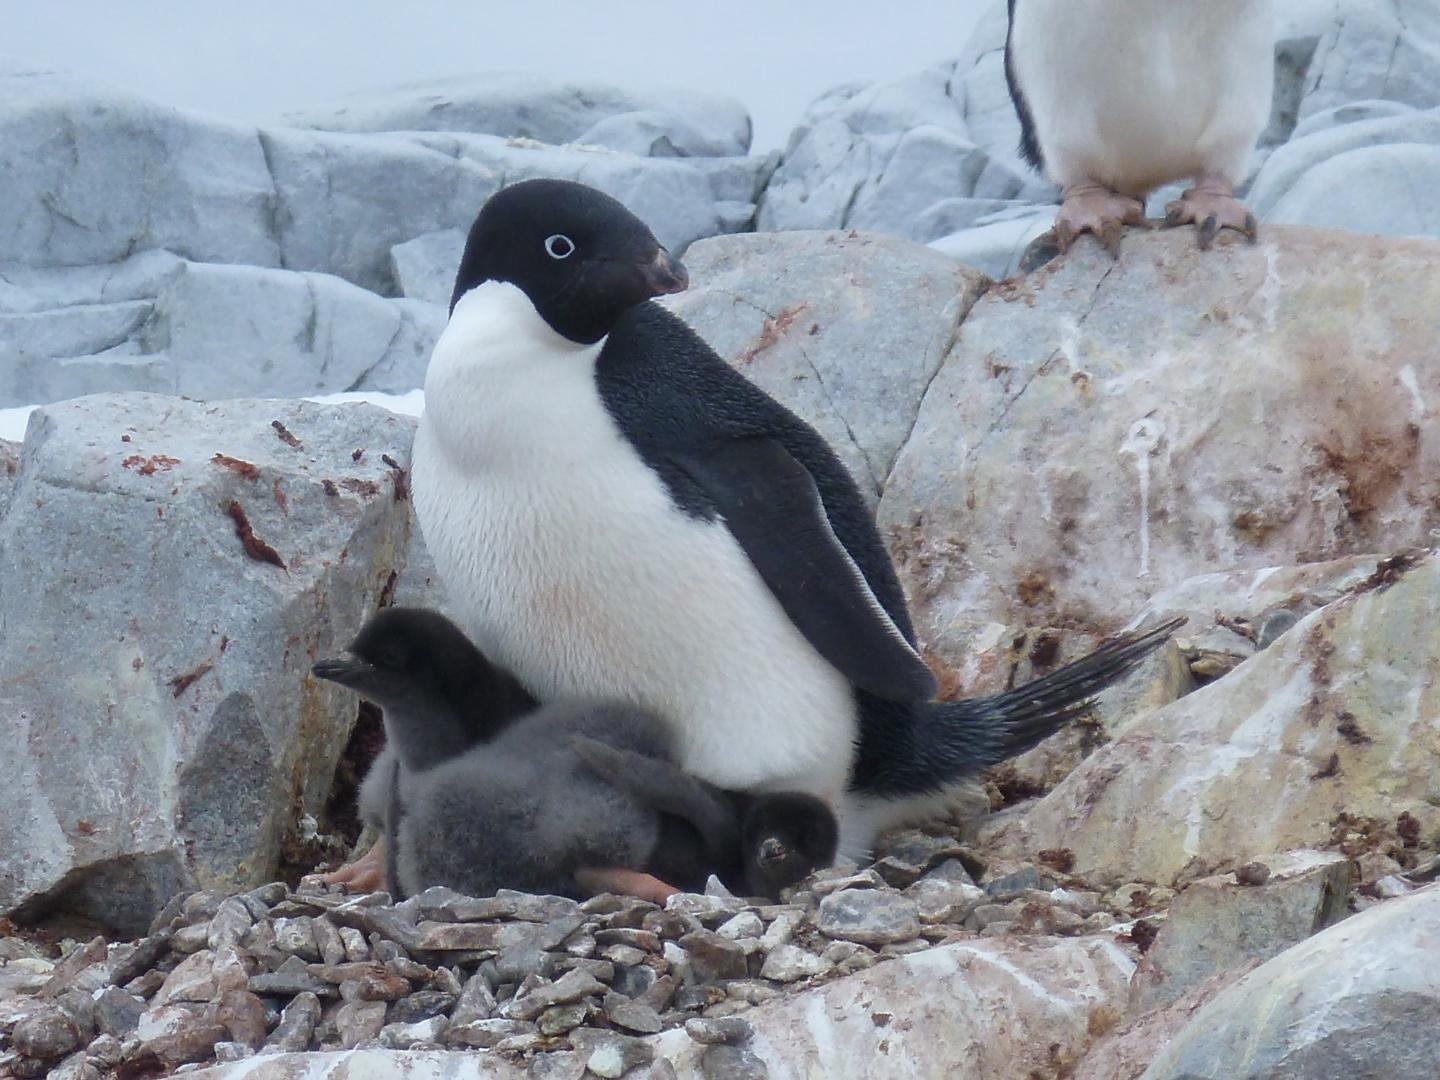 Antarctica Penguin Colonies Face Stark Decline By The End